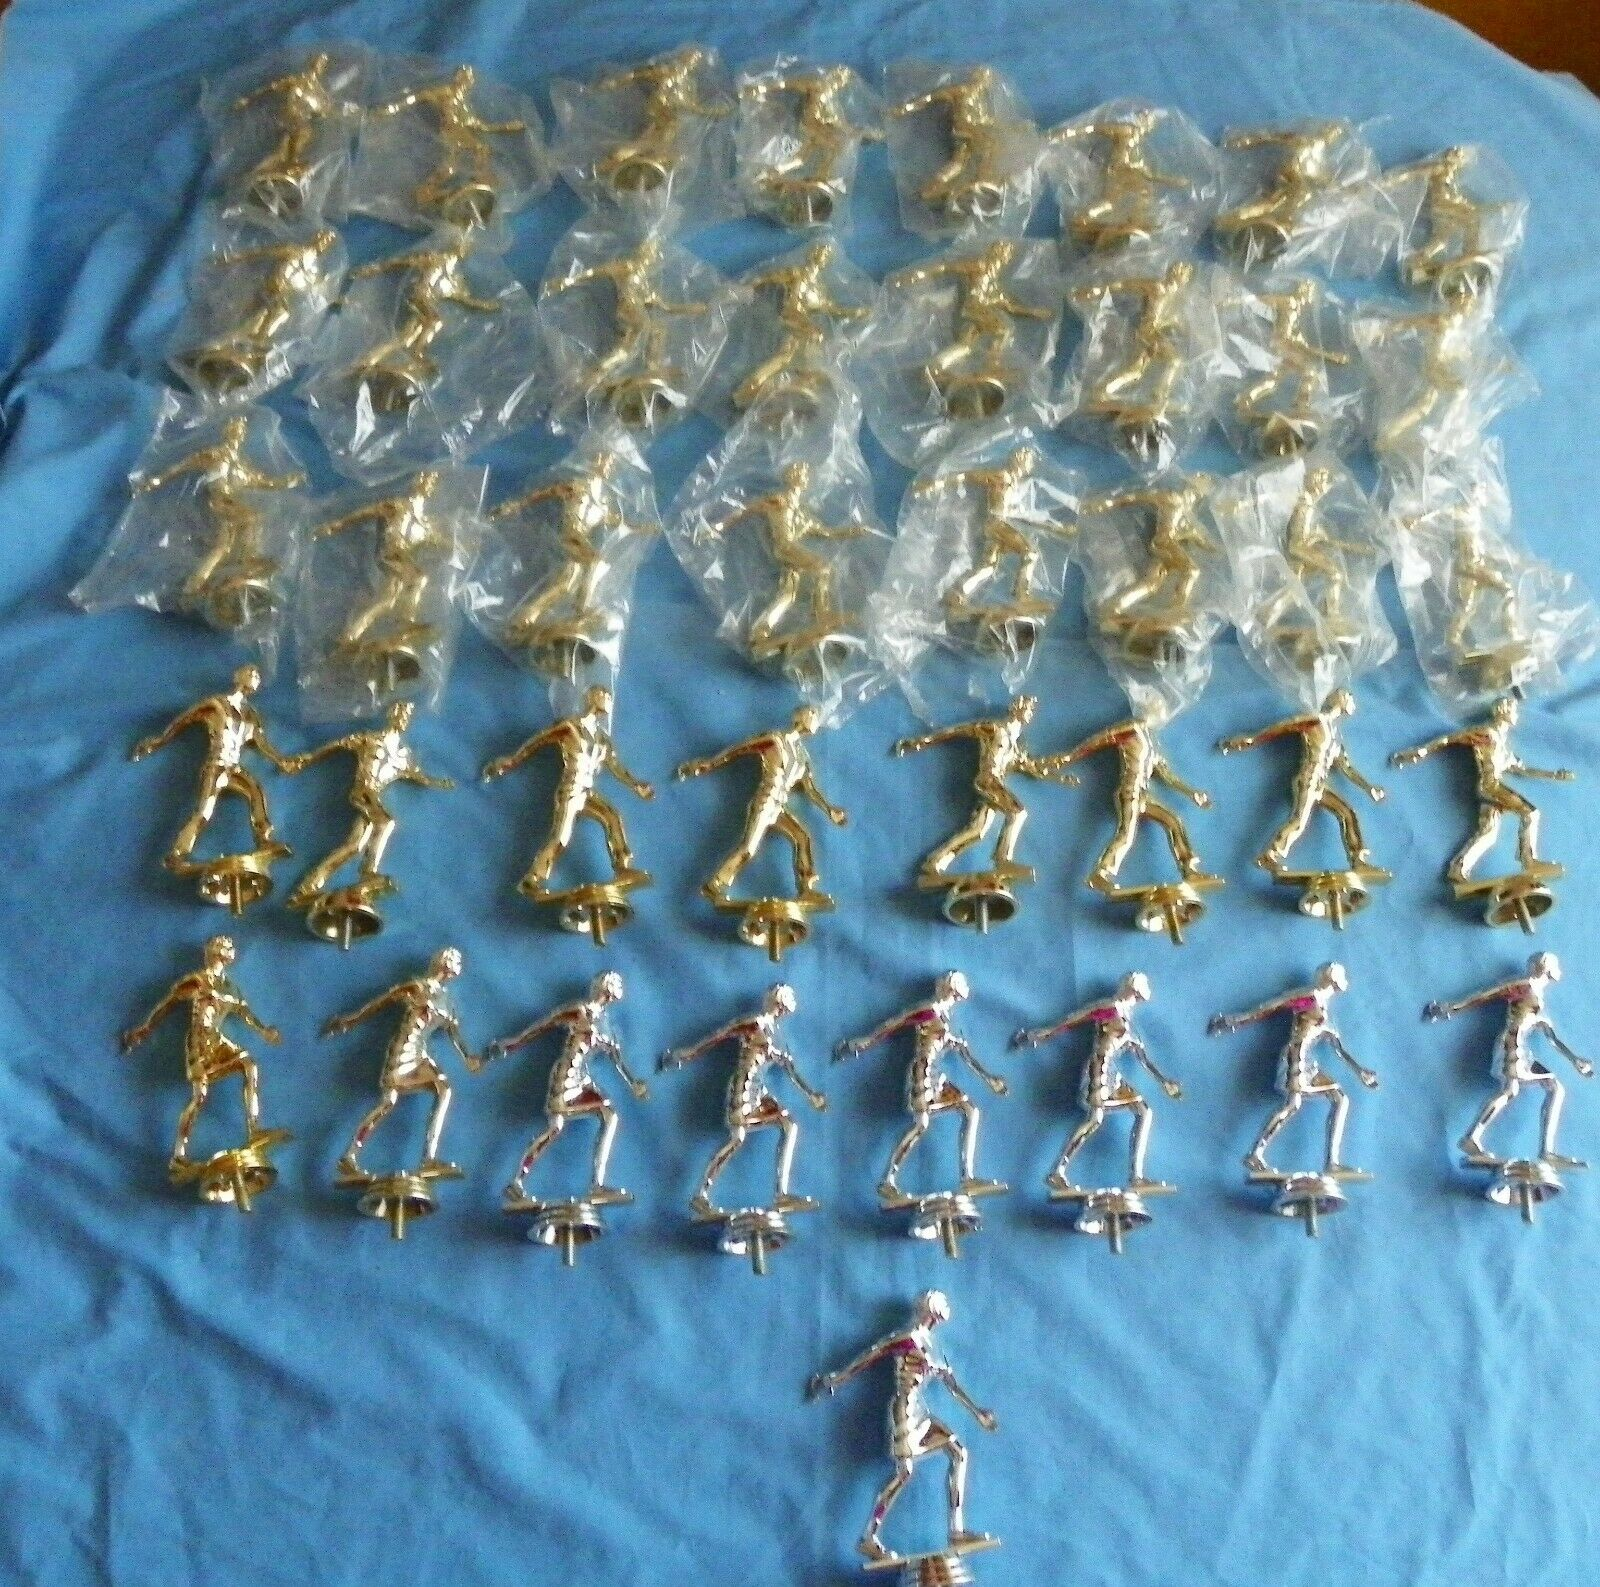 41 Horseshoe  Throwing Trophy Toppers NOS FS  reasonable price